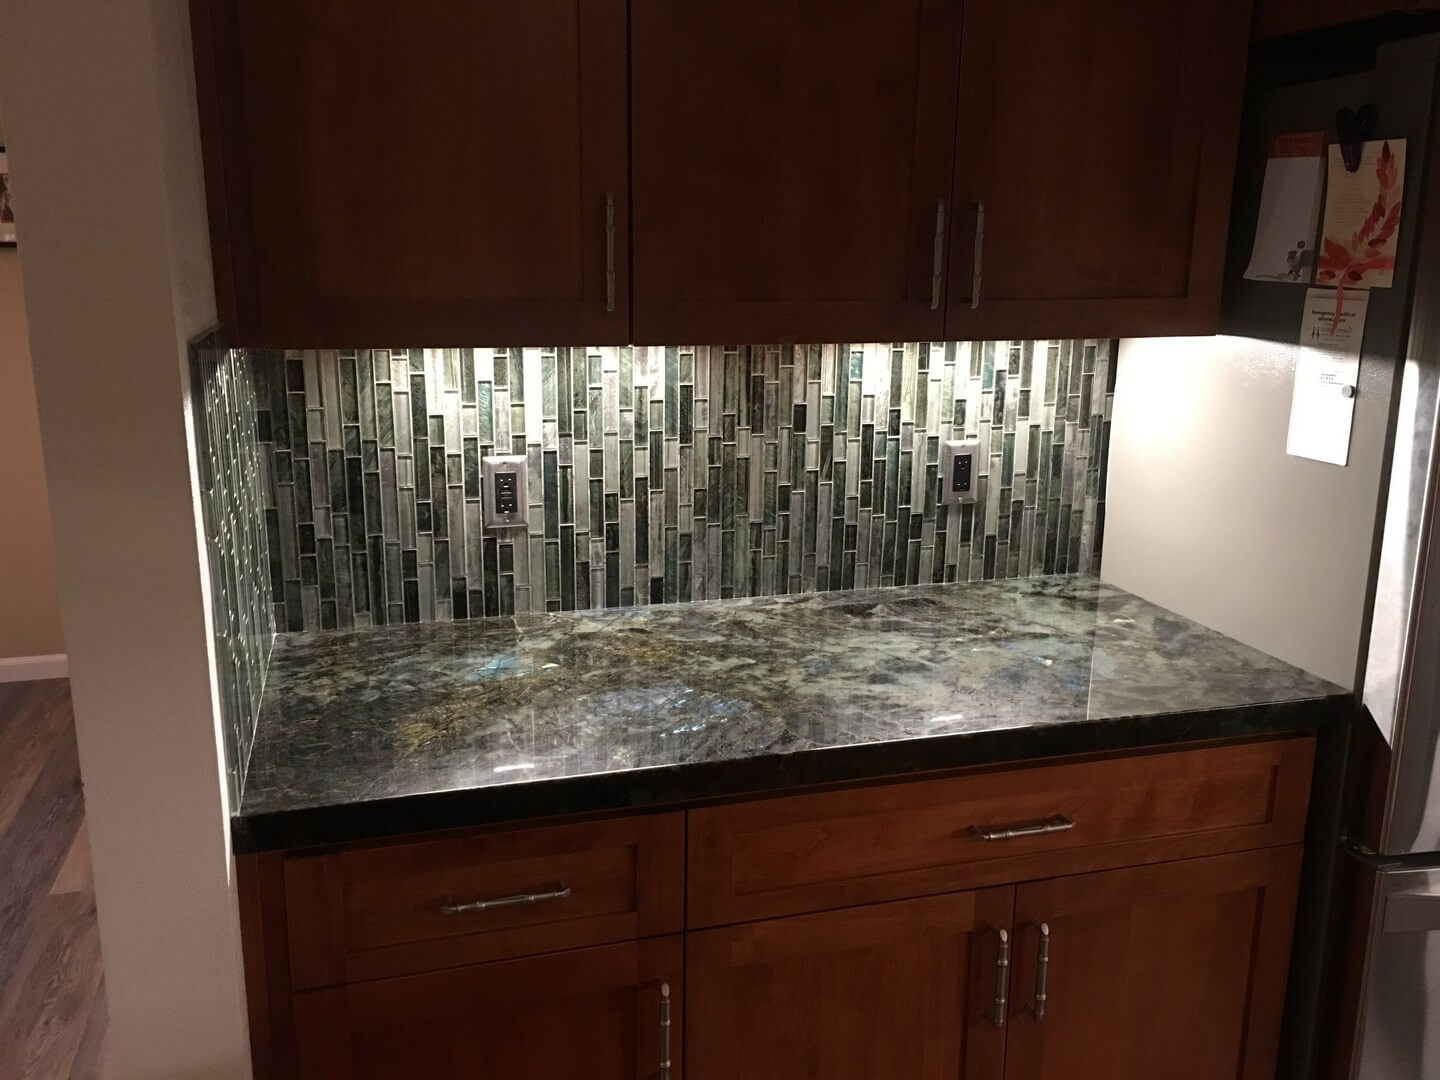 backsplash detail with vertical tiling matching the countertop